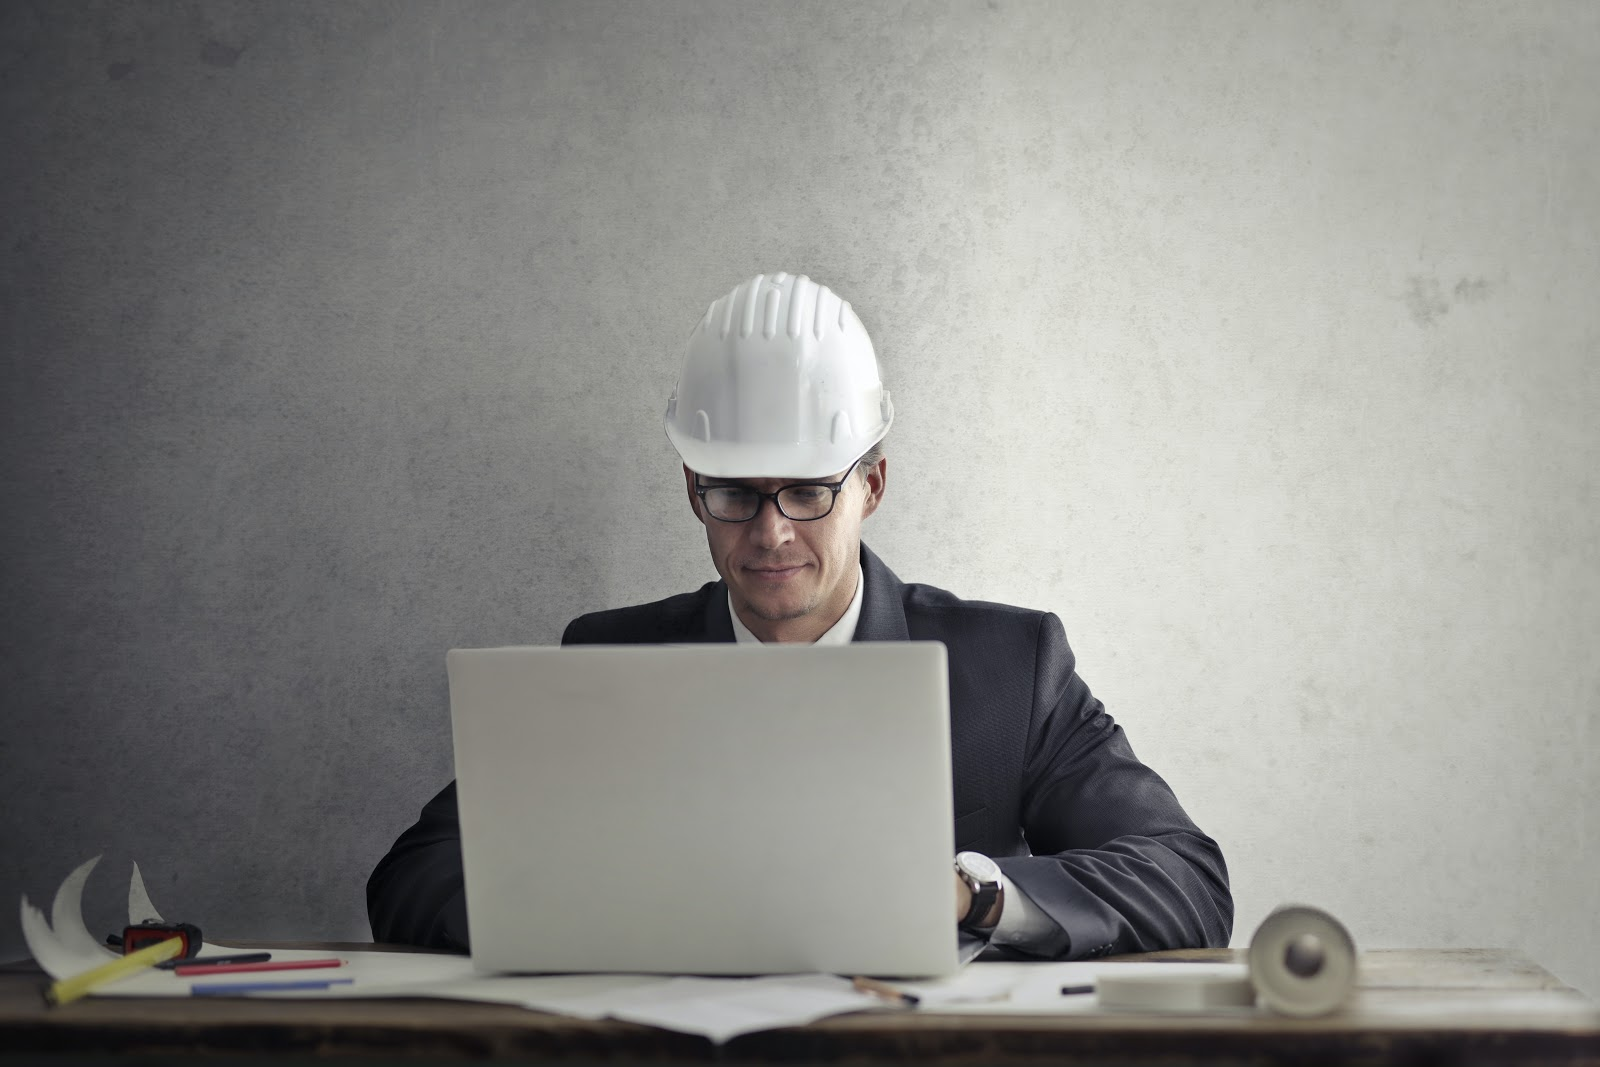 A man in a hard hat uses a laptop on a desk in a gray room